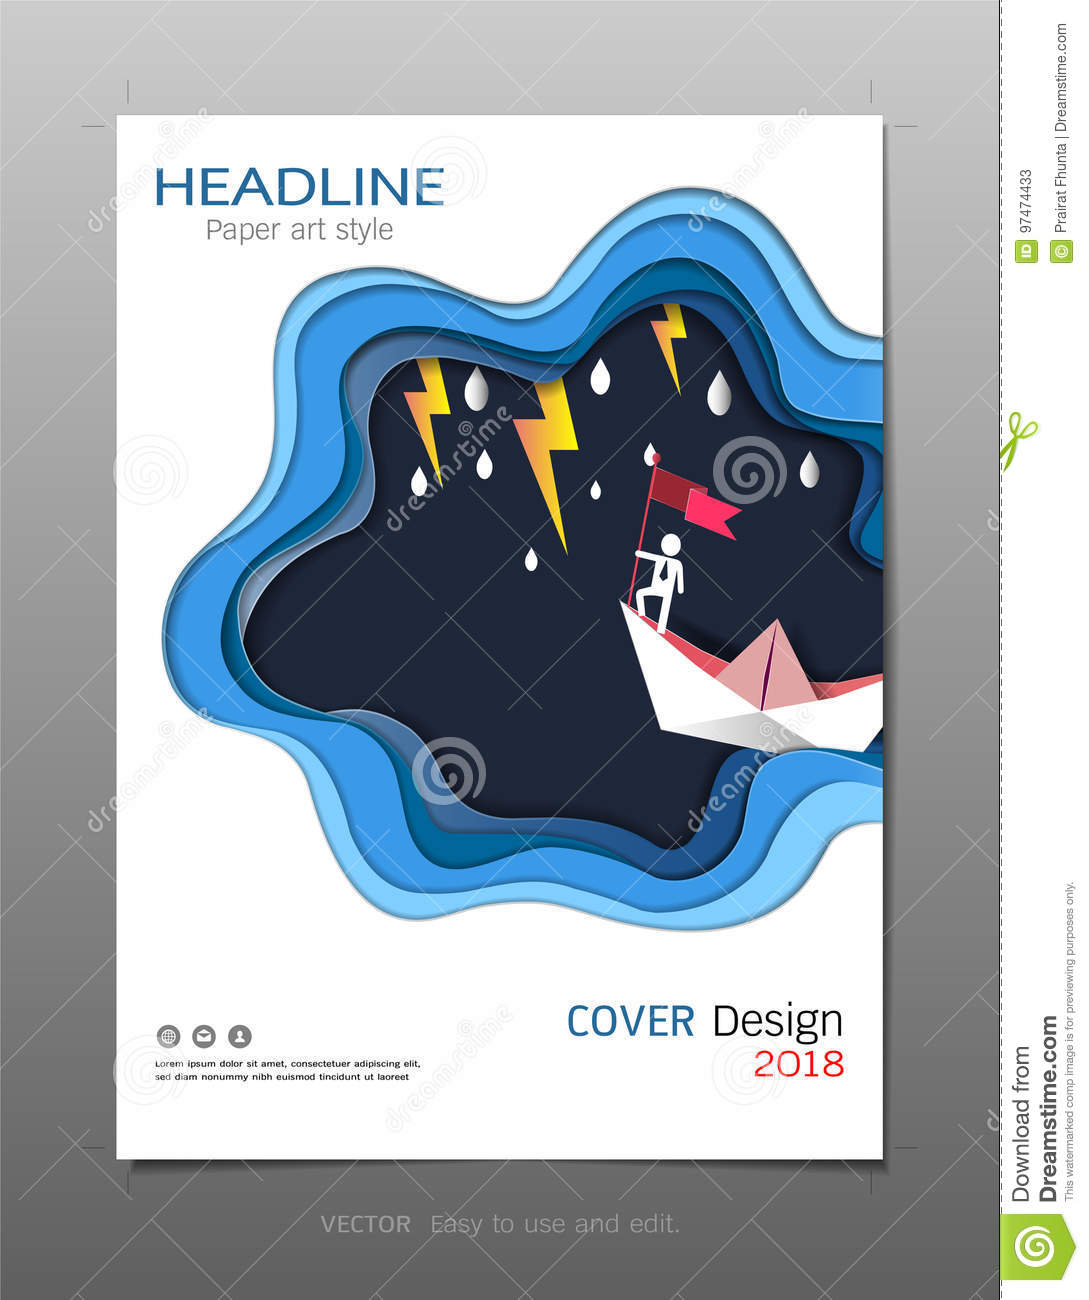 Covers Design Template, Inspiration For Leadership And